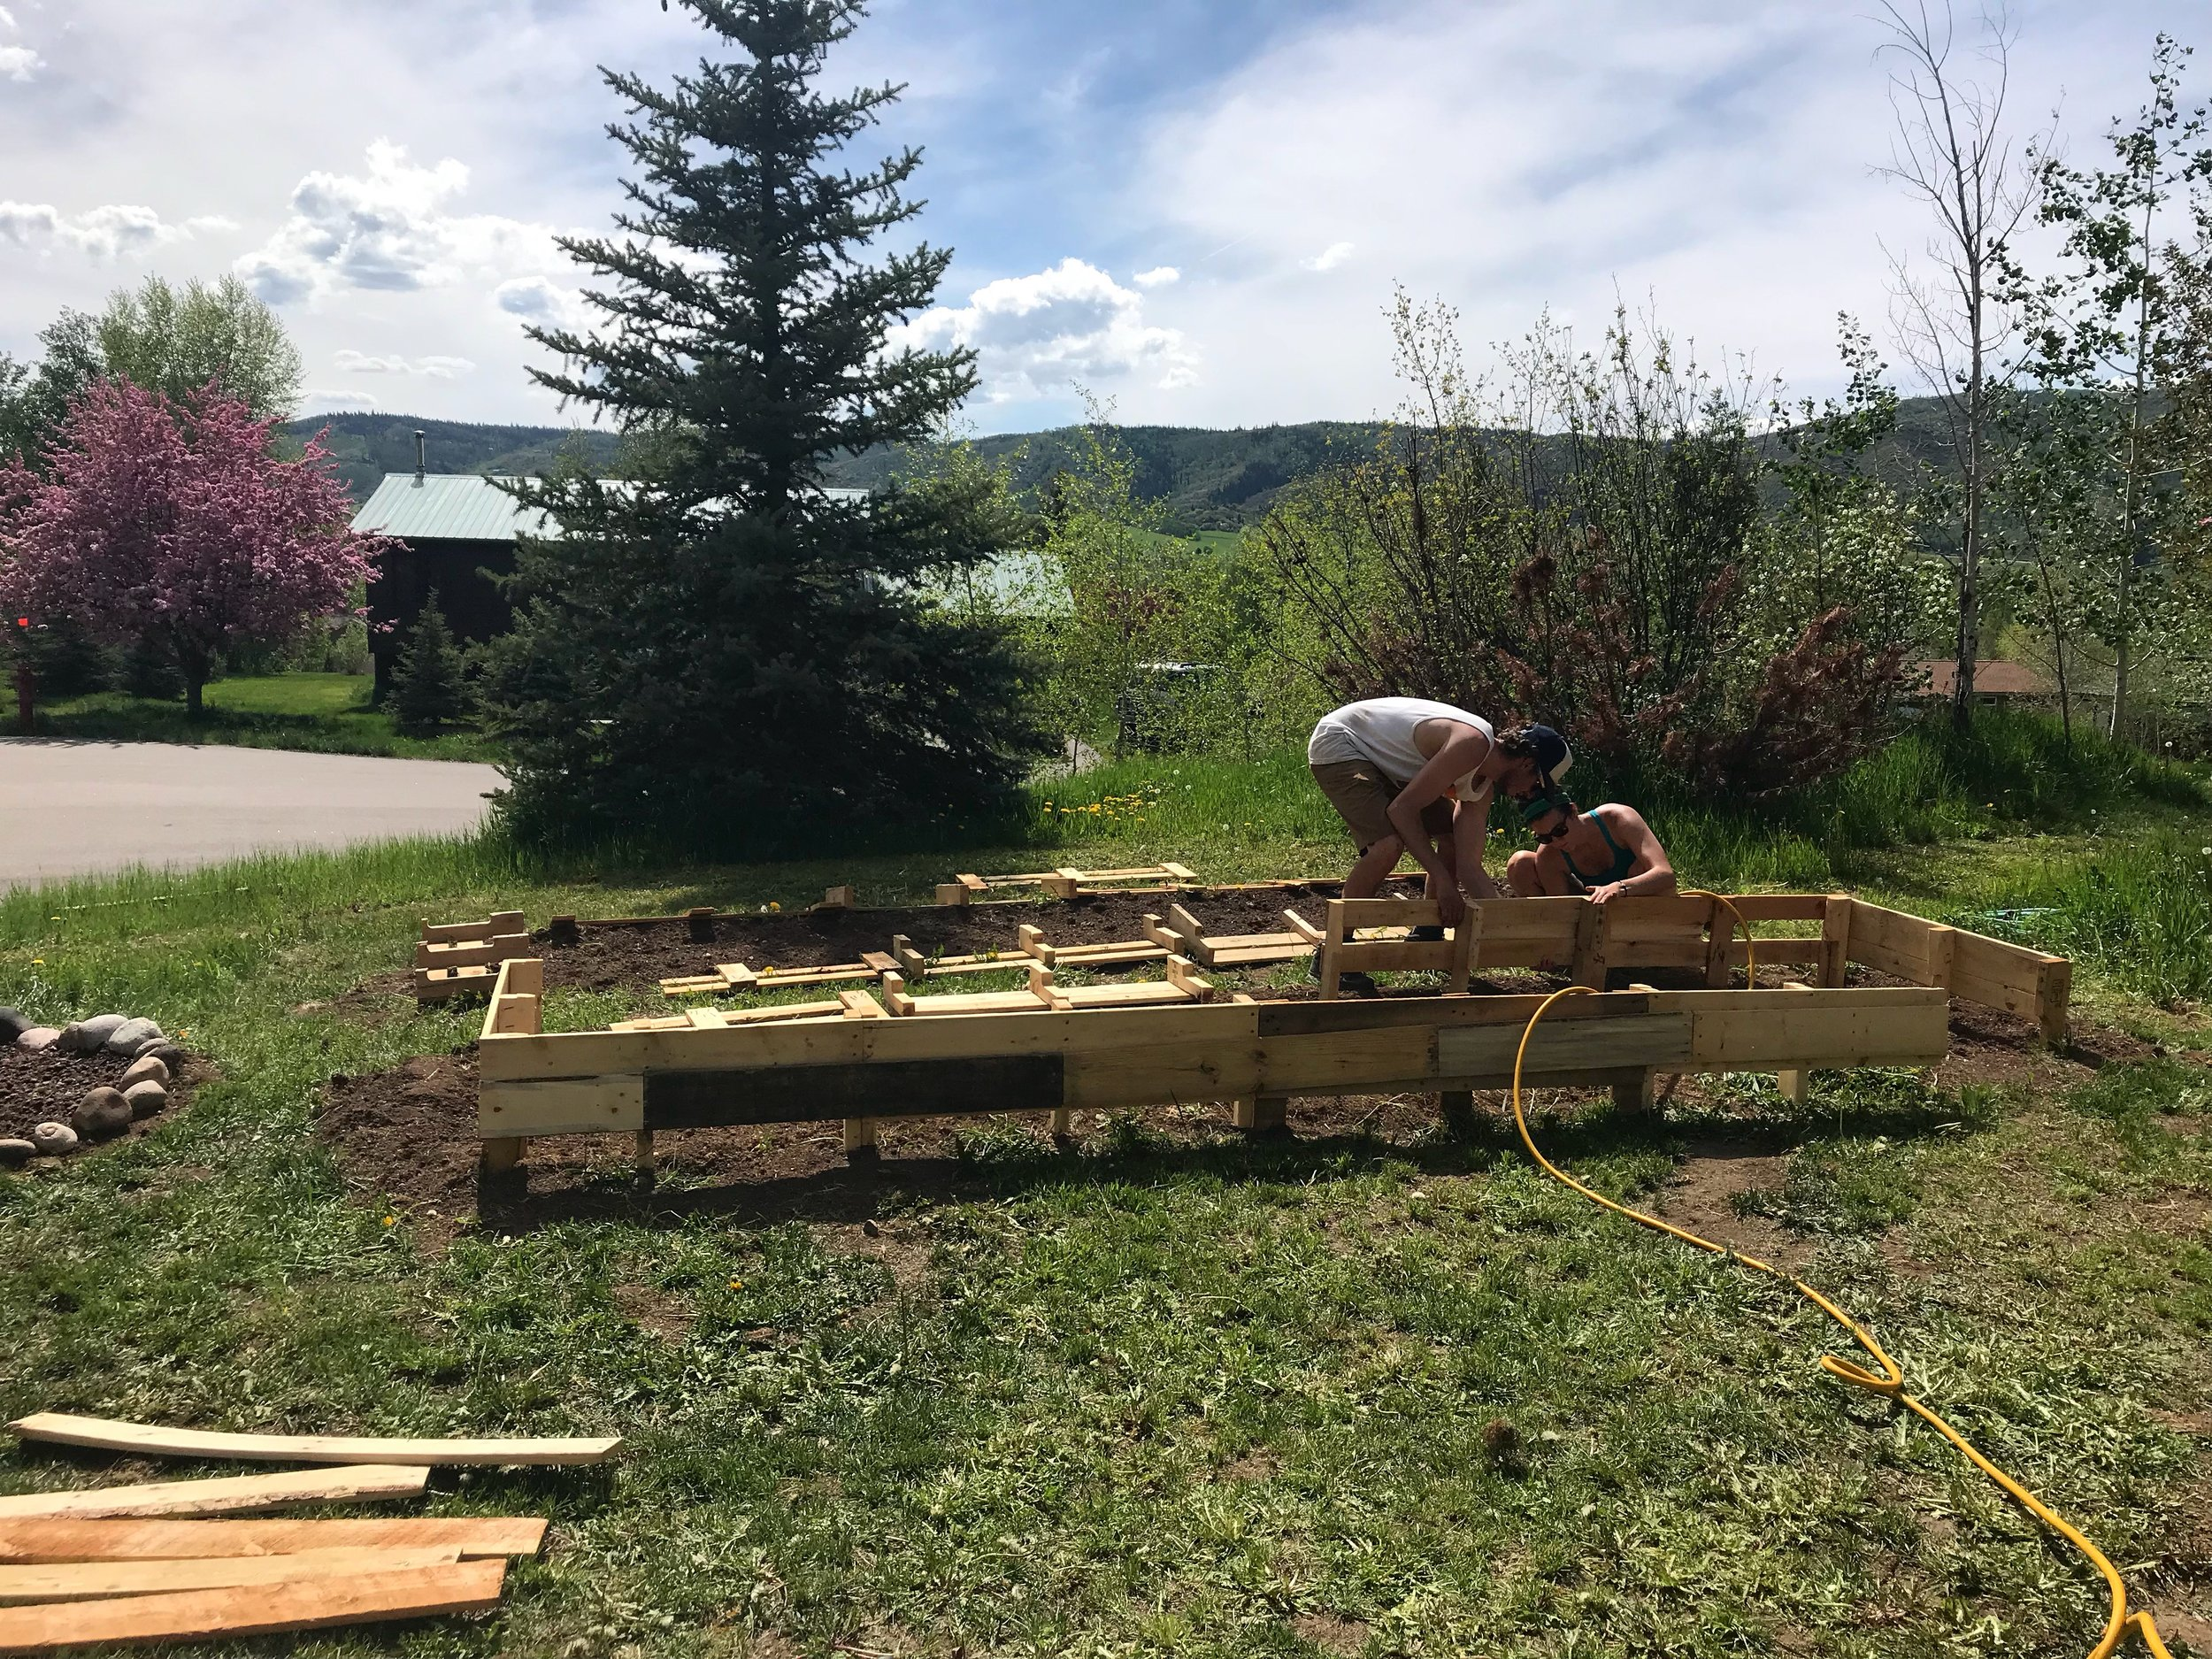 My garden beds are built from wooden pallets my brother and I found around town.